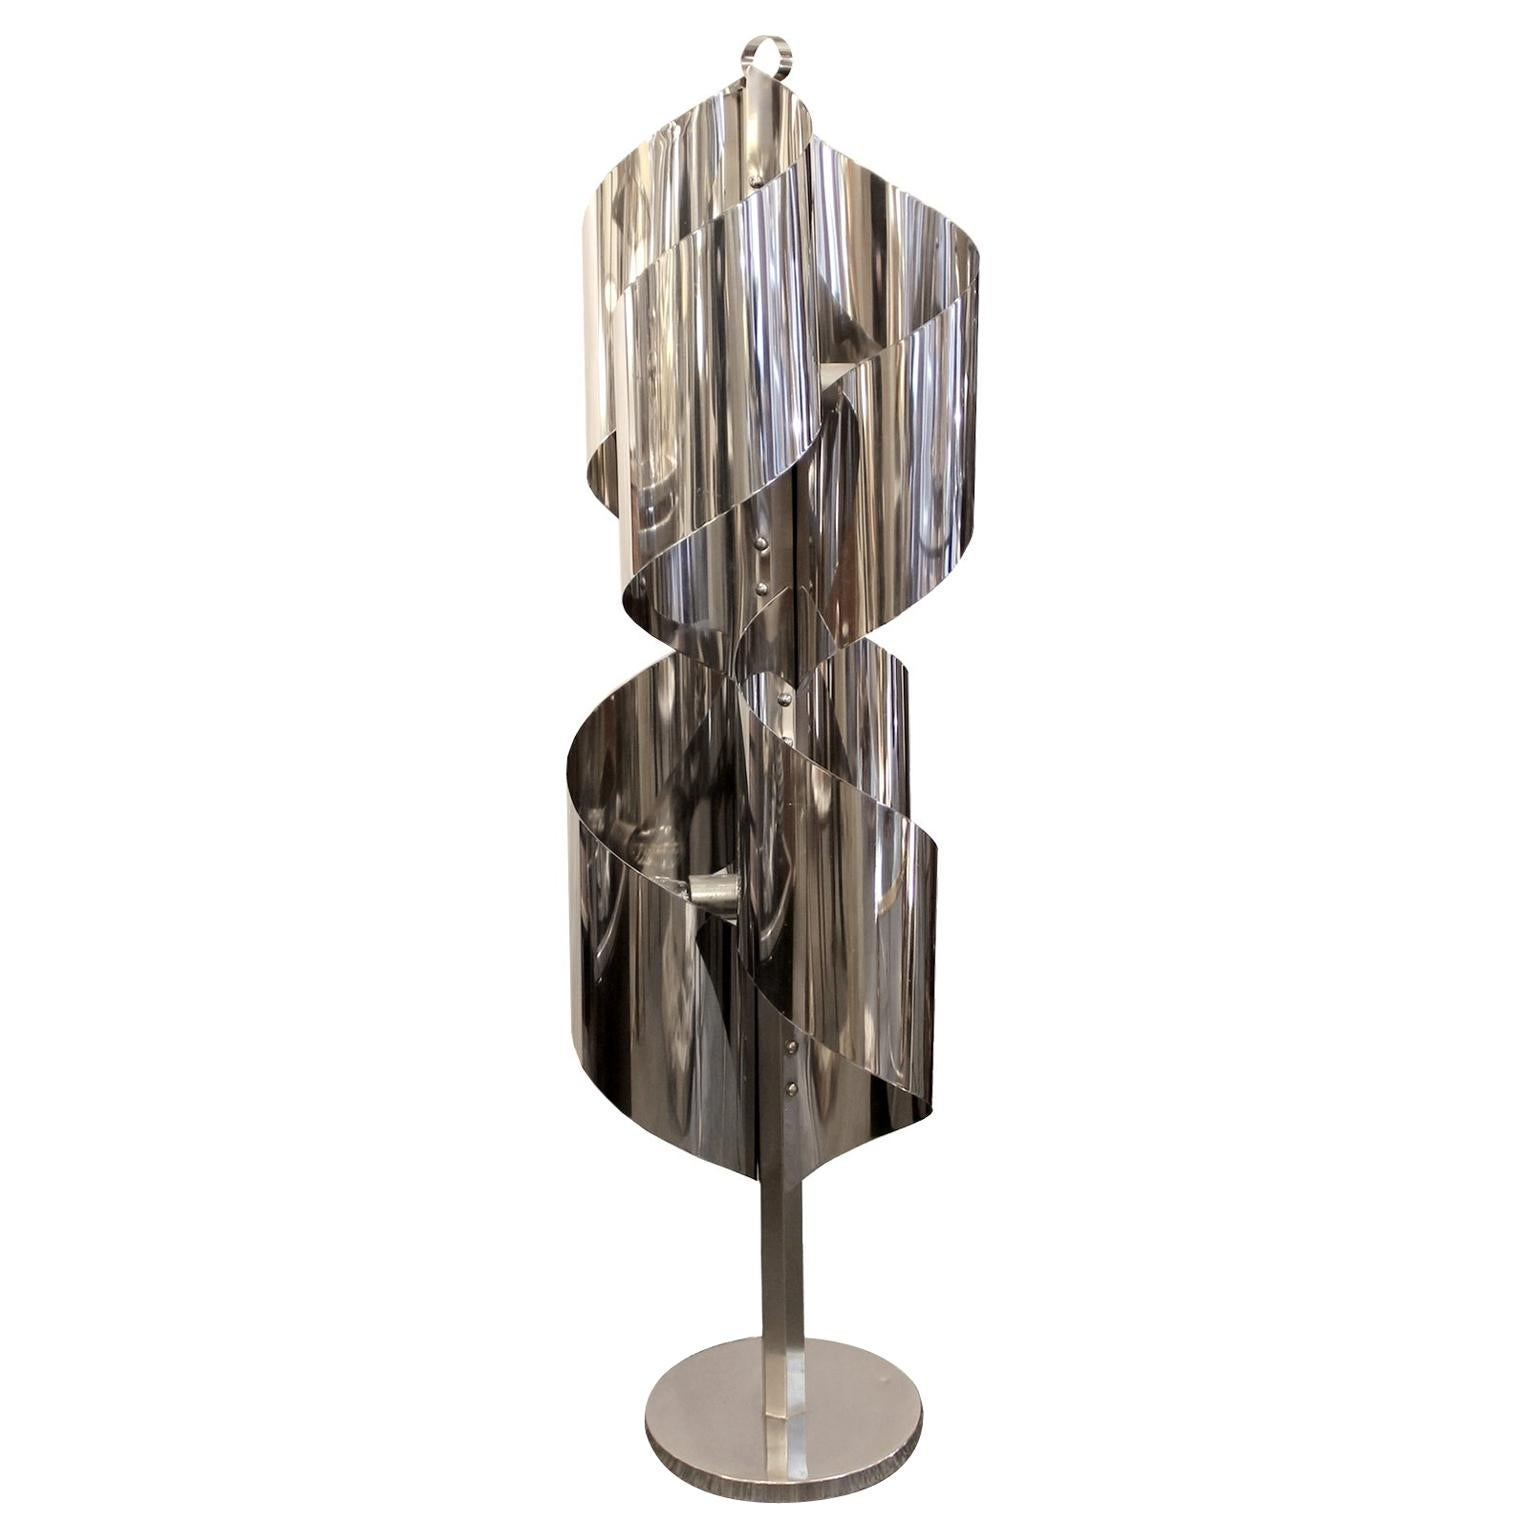 Floor Lamp in Shiny Stainless Steel, Italy, circa 1970